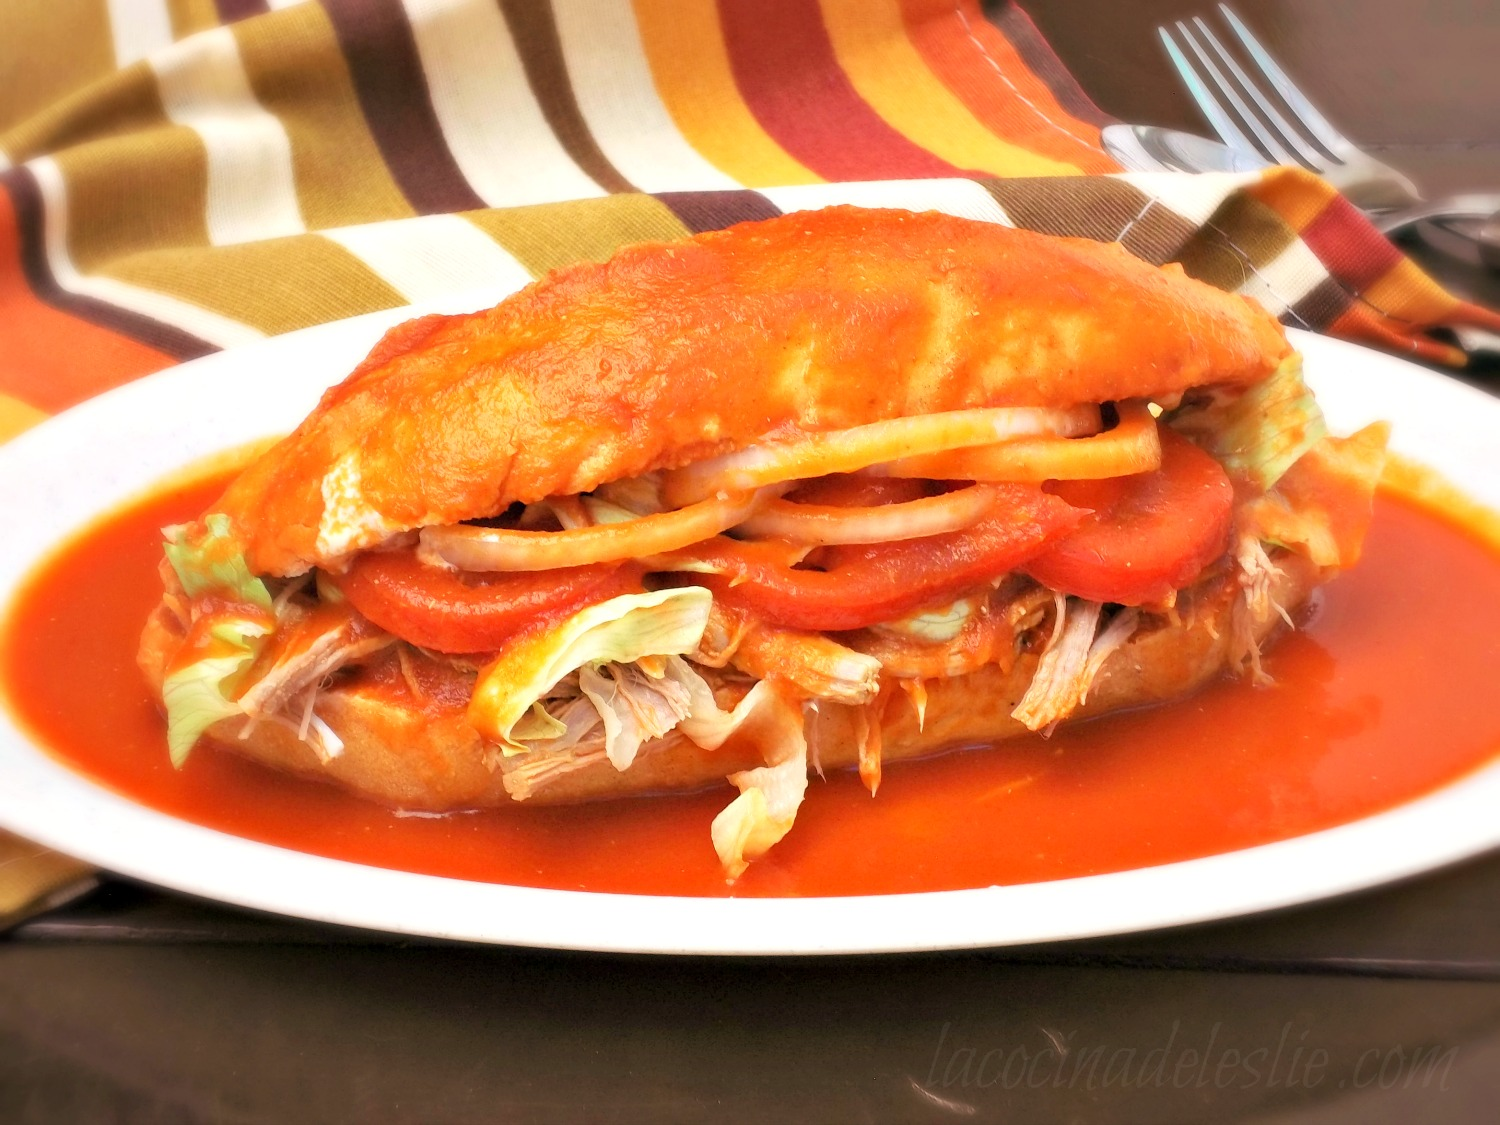 Mexican Shredded Pork Sandwich with Tomato-Chipotle Sauce - lacocinadeleslie.com